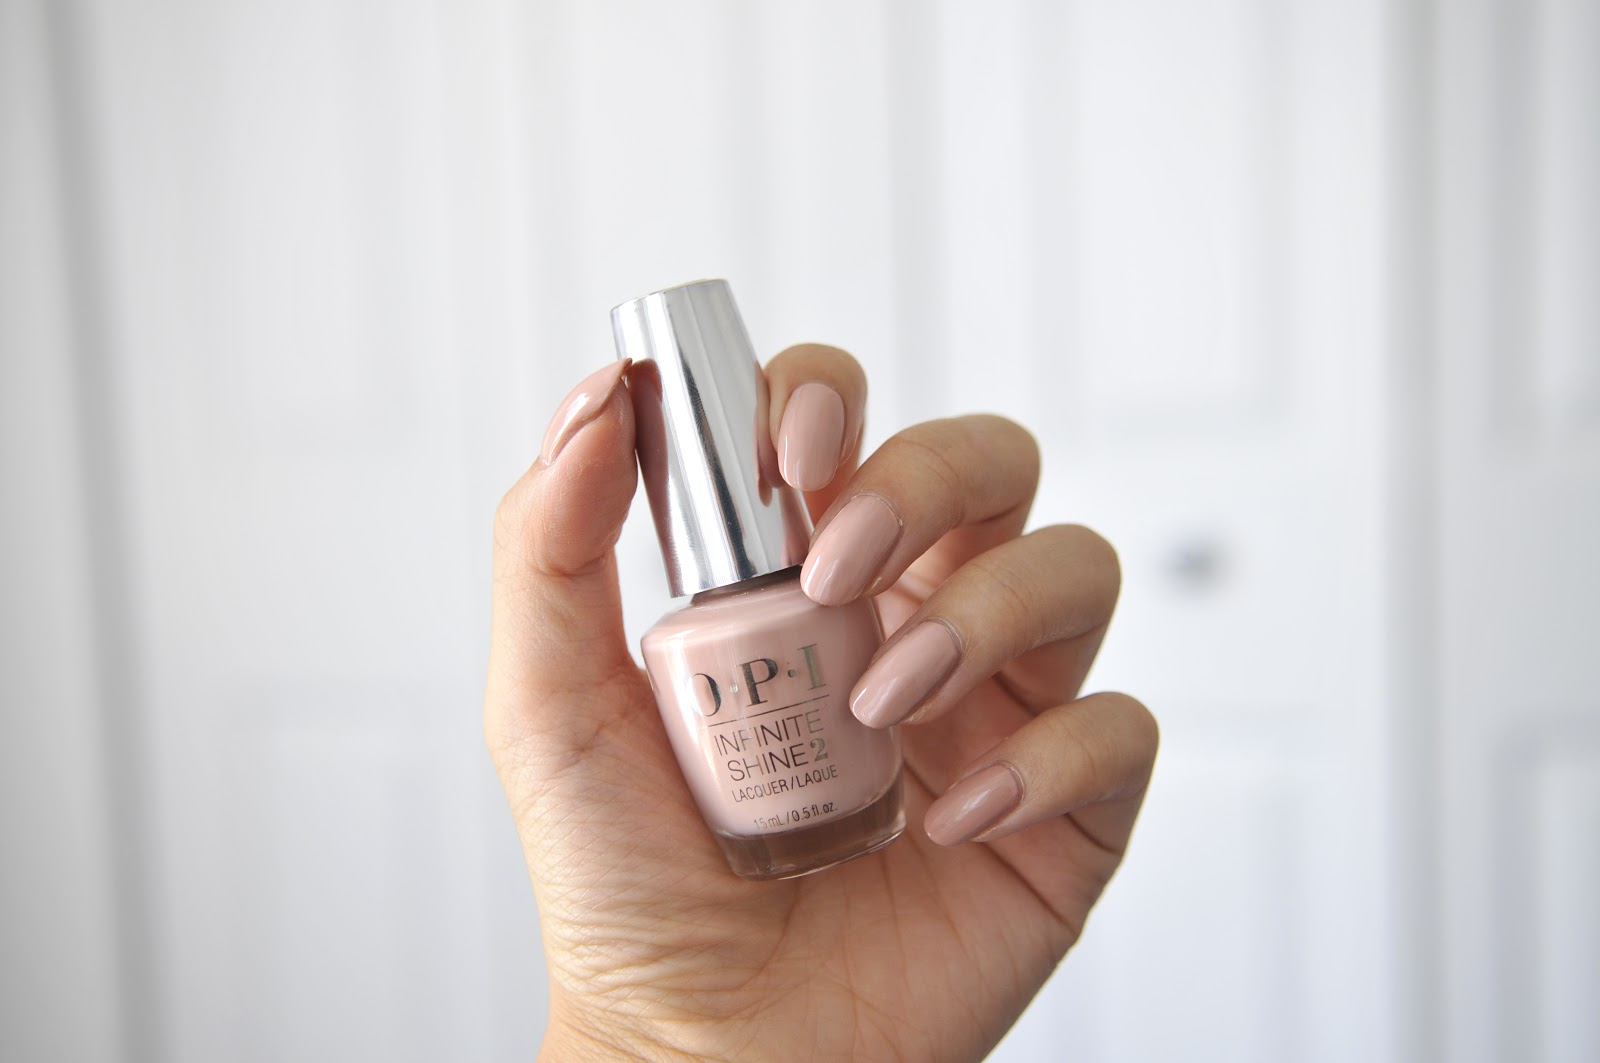 fun size beauty: 6 Shades of Nude - OPI Infinite Shine Summer 2016 ...